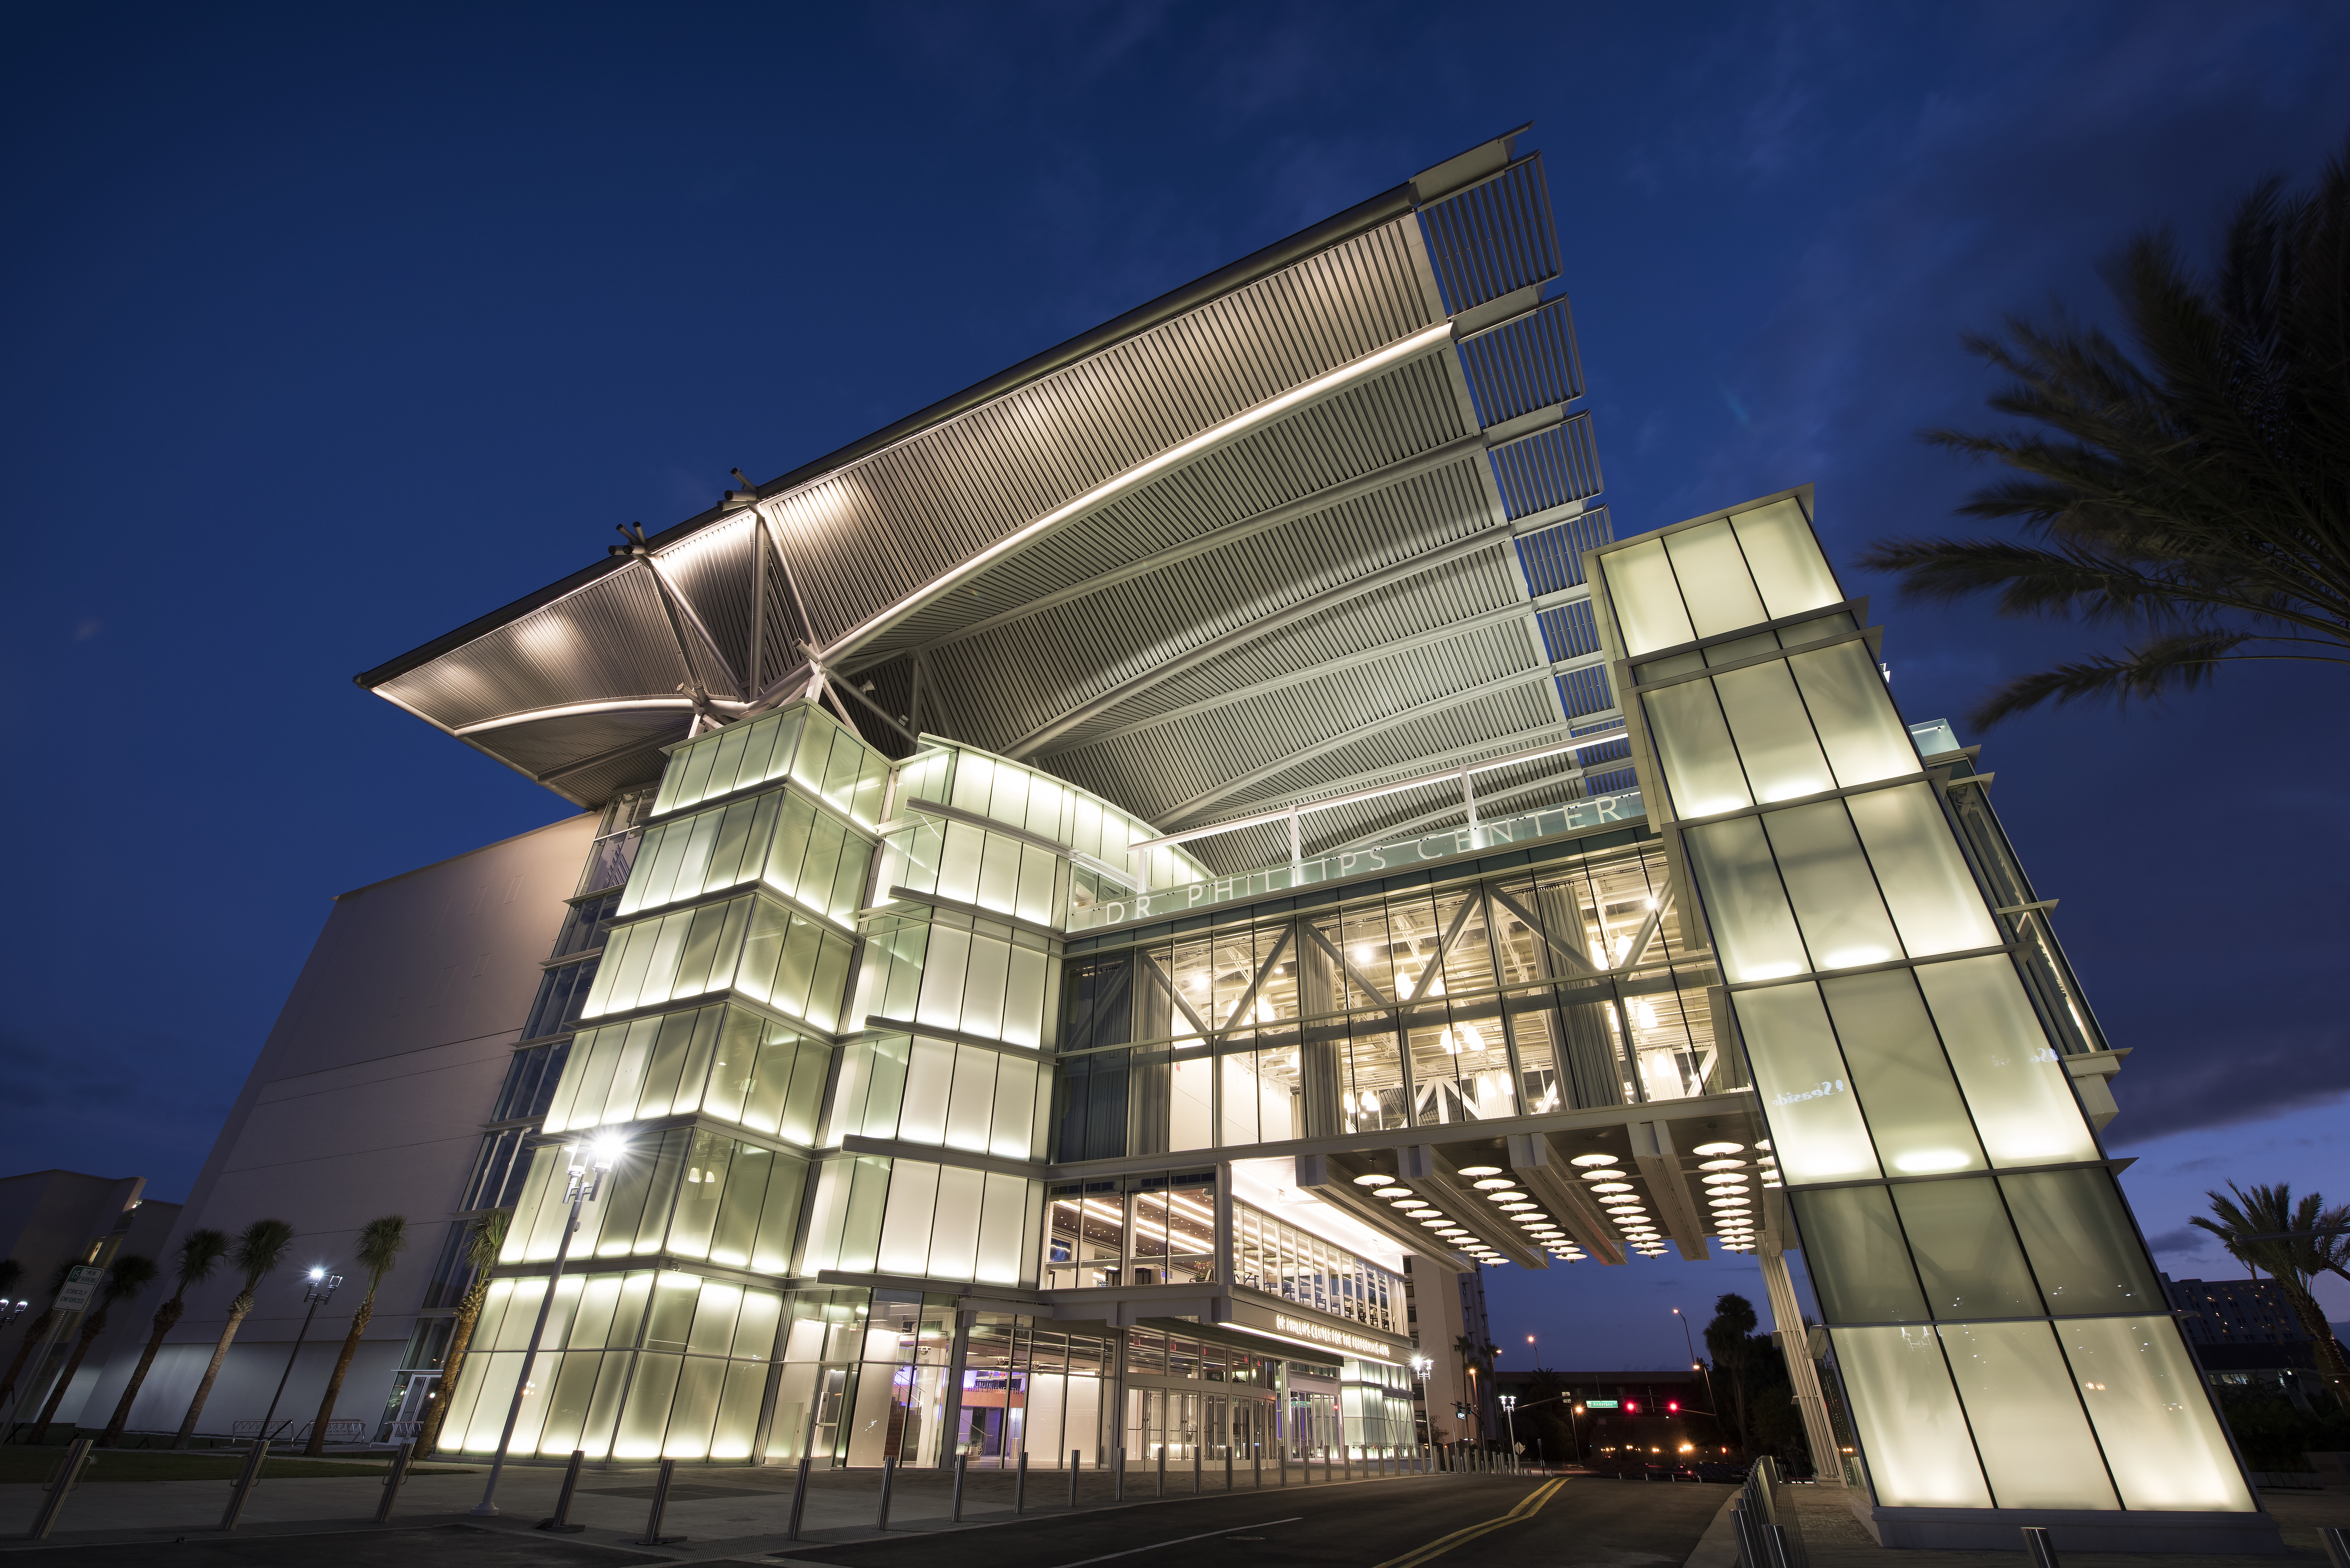 The Dr Phillips Center of the Performing Arts opened in 2014.